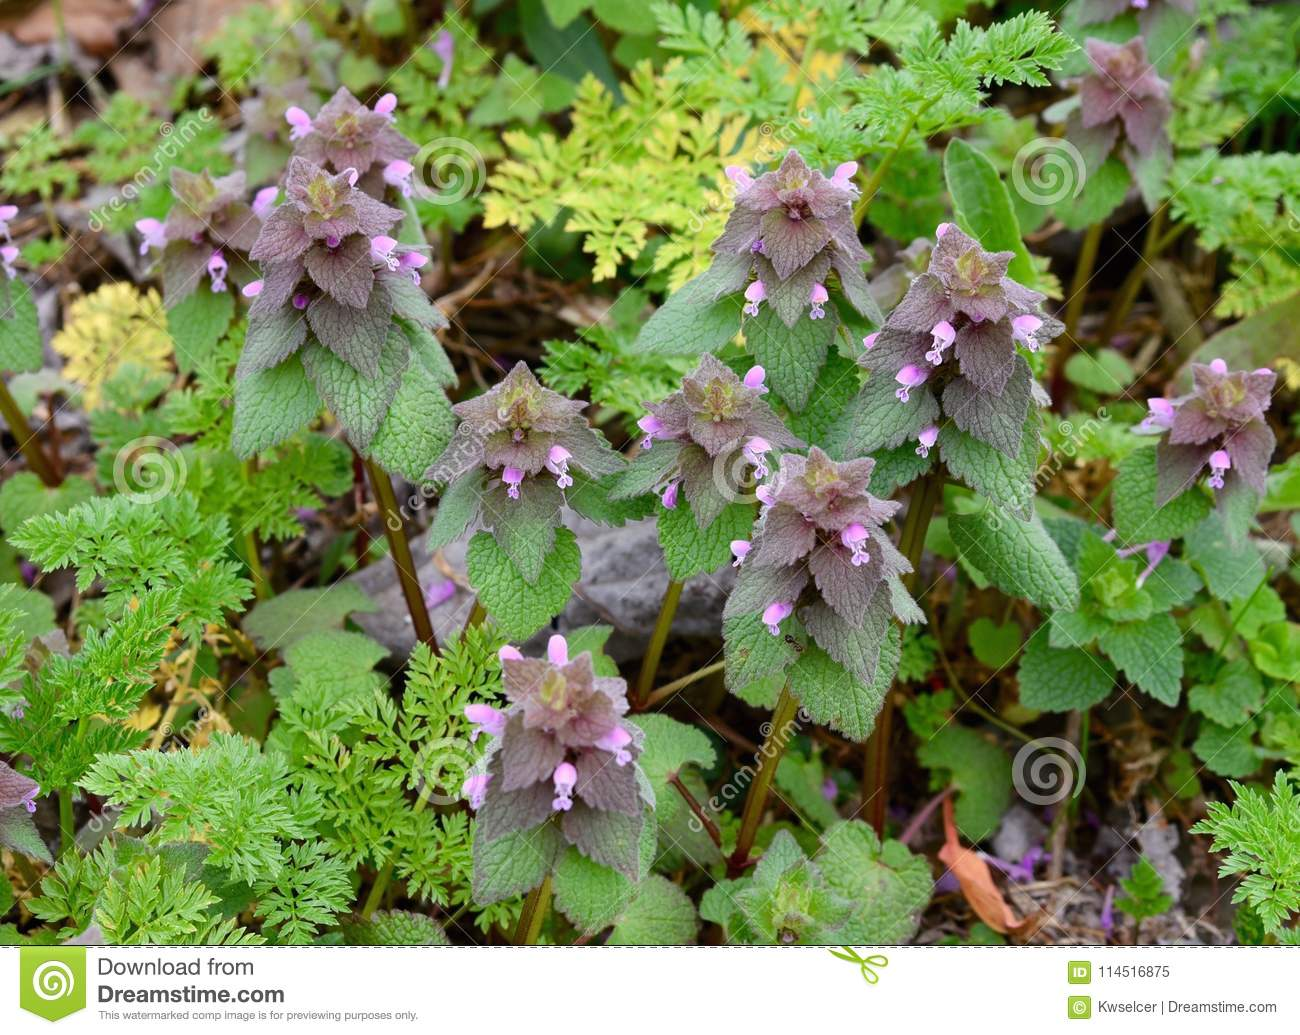 Cluster Of Red Dead Nettle Plants With Pink Flowers And Purple And